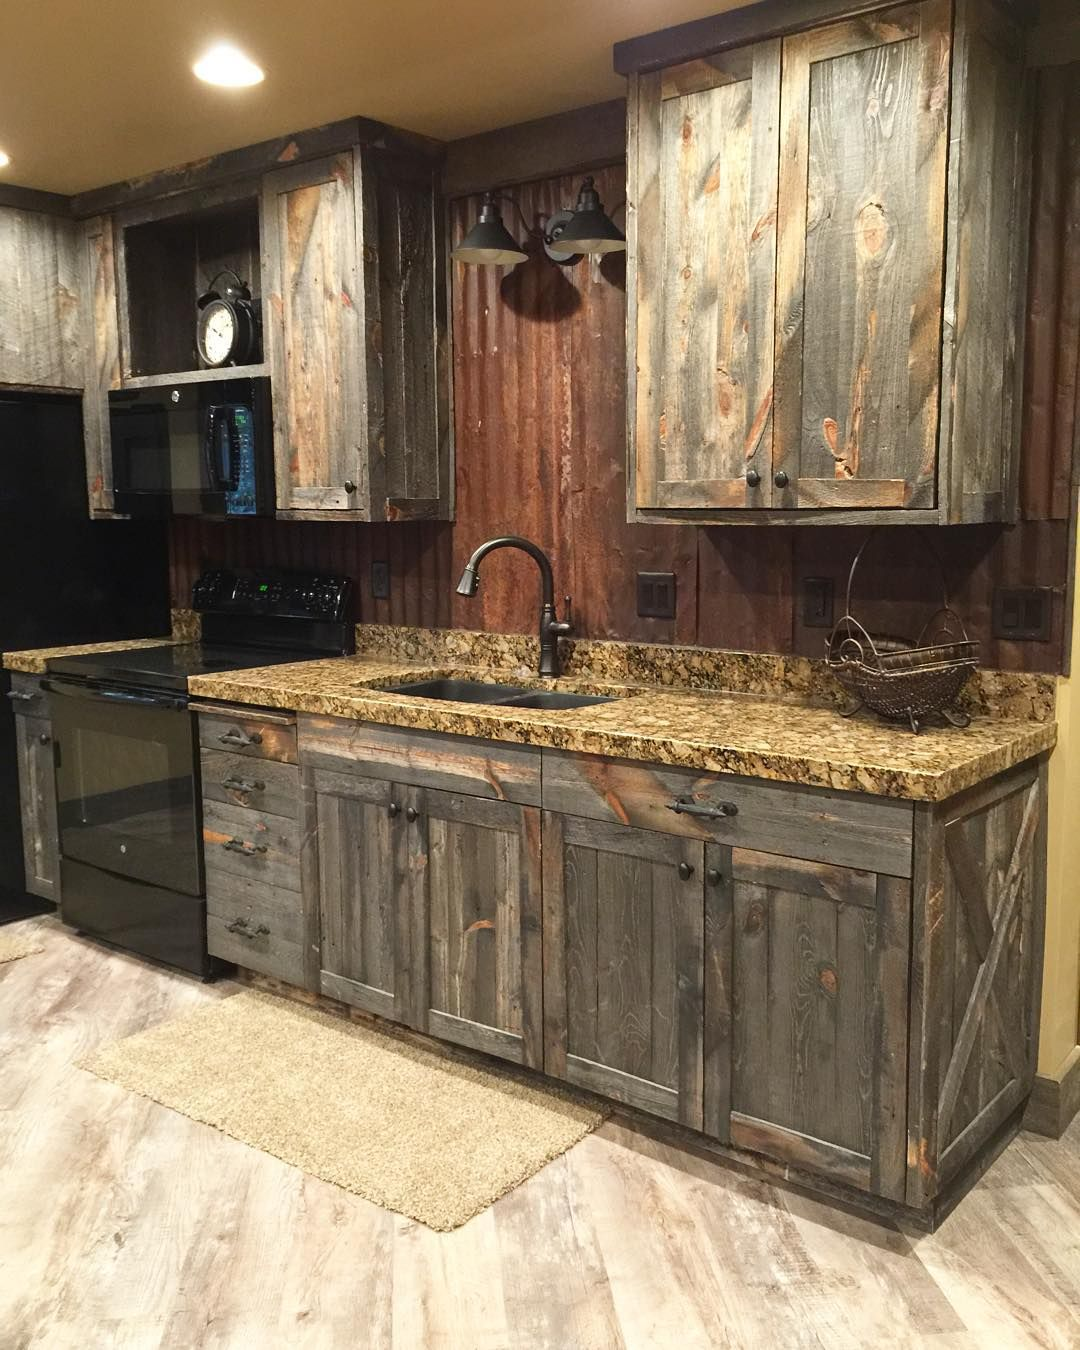 A little barnwood kitchen cabinets and corrugated steel backsplash love how rustic and homey it - Rustic wooden kitchen cabinet ...